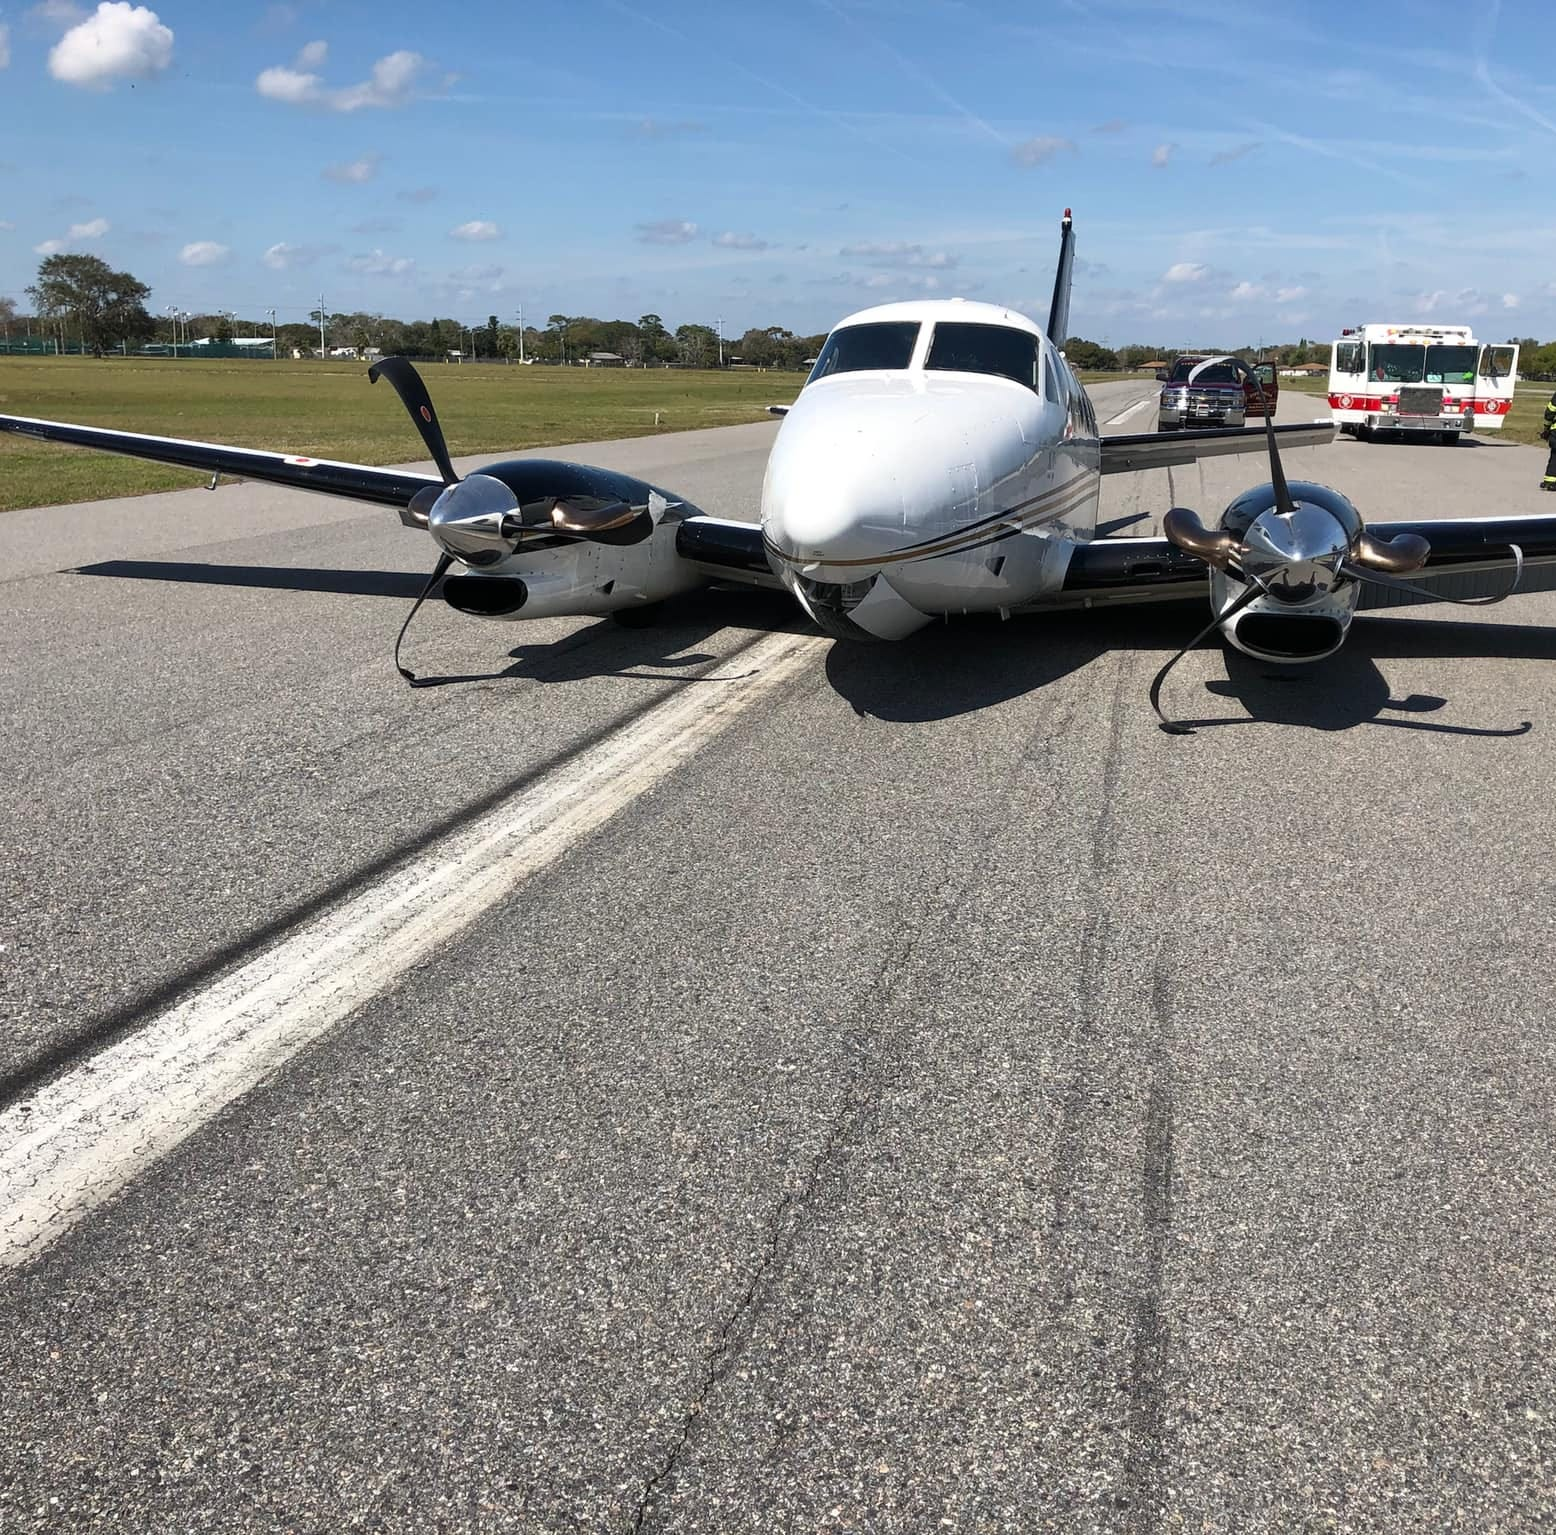 No one was injured after a small aircraft made a belly landing at a Titusville airport.